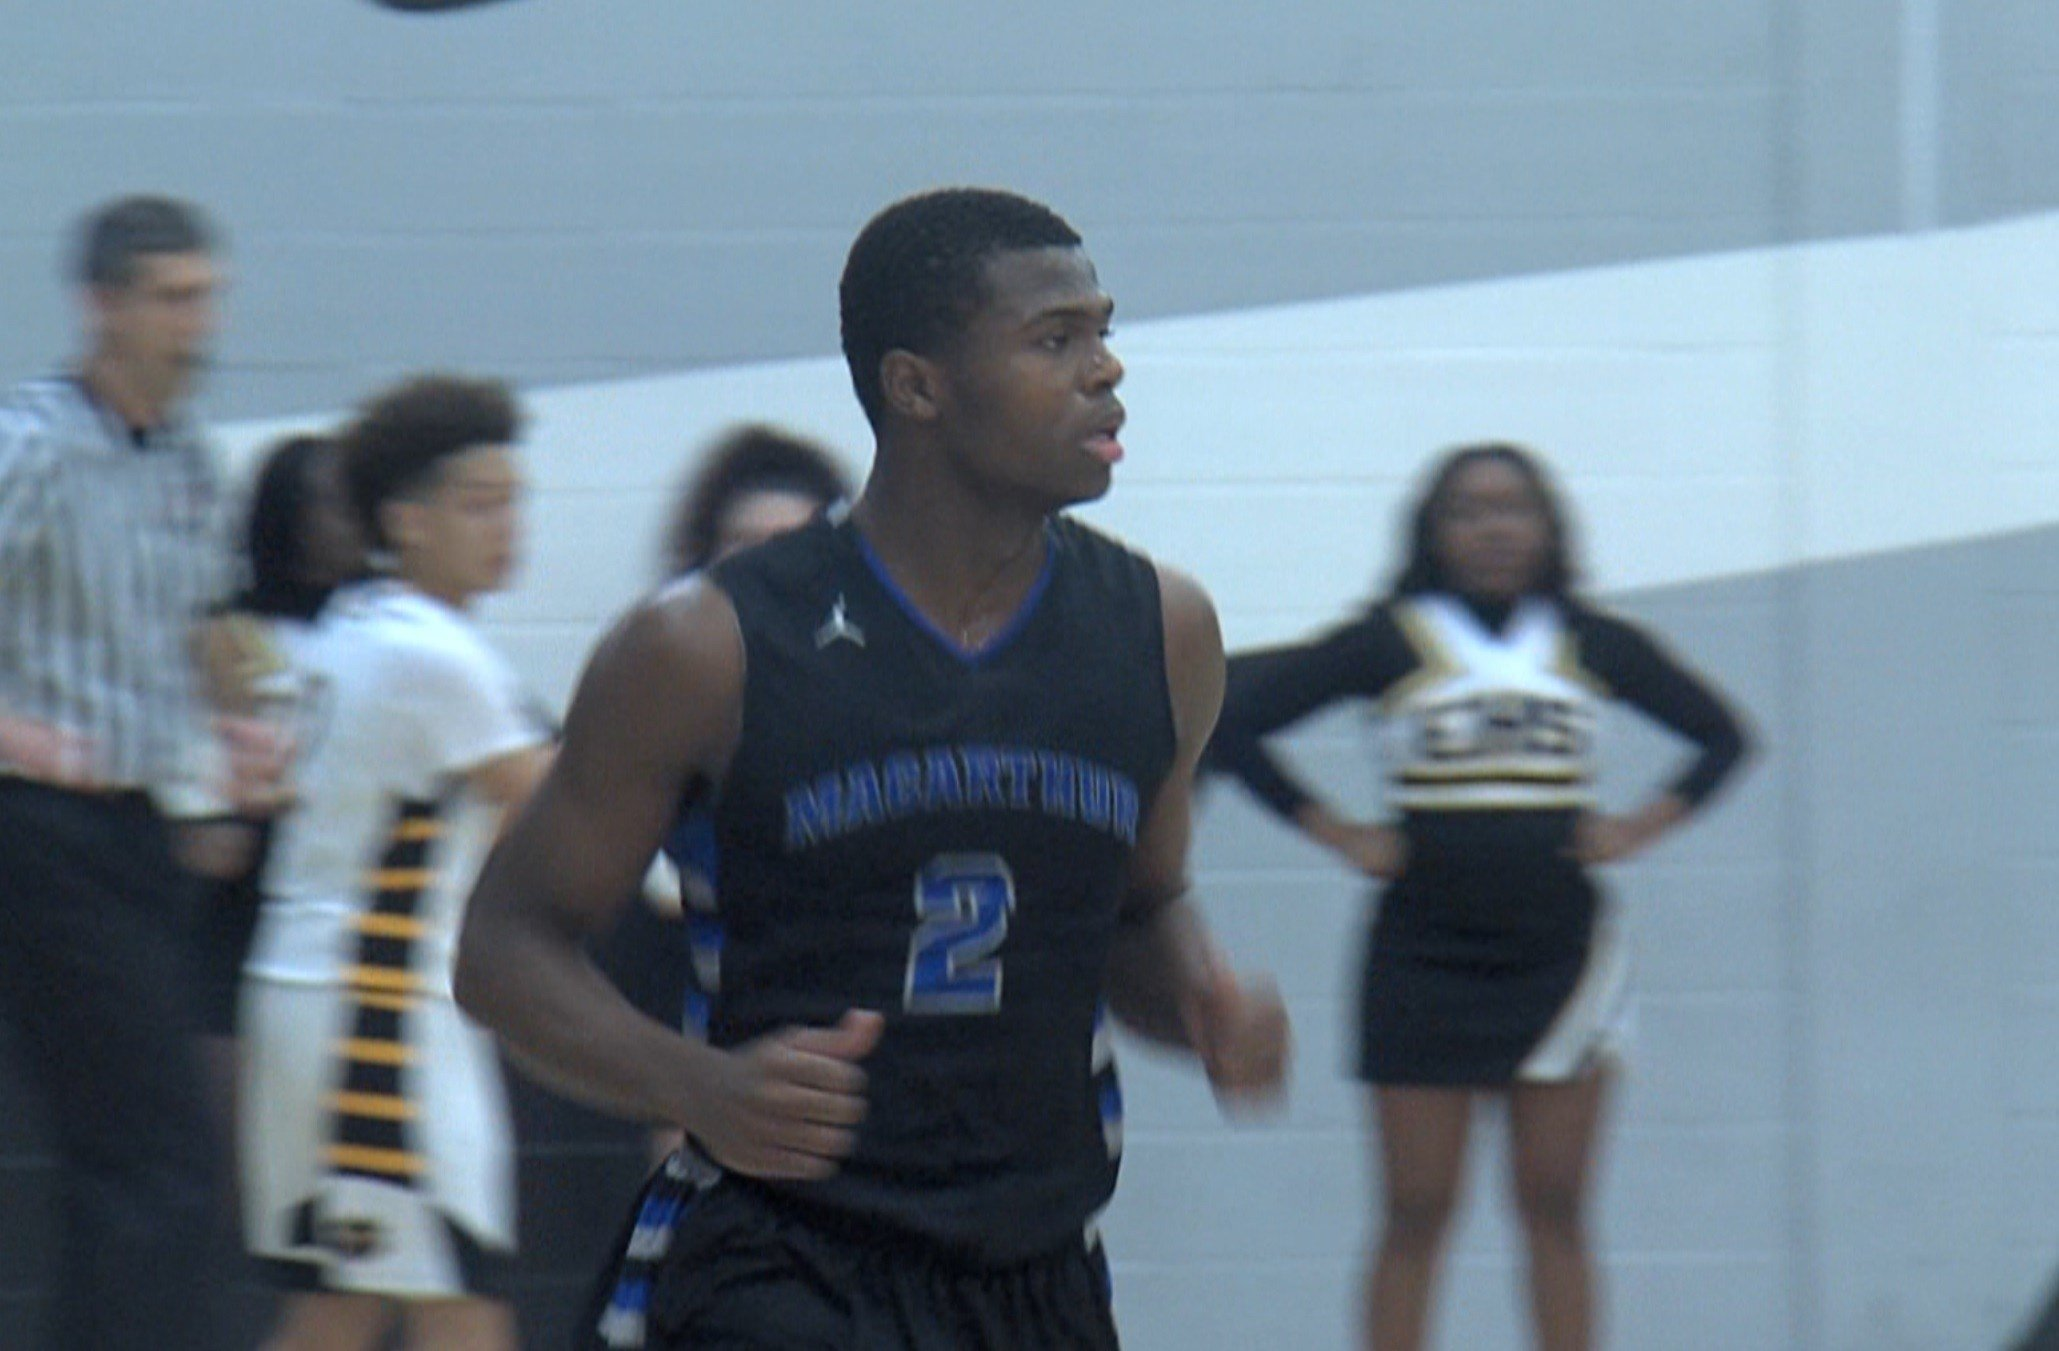 MacArthur wing Armon Brummett posted 31 points in an 84-81 win over Eisenhower on Friday night in Decatur.